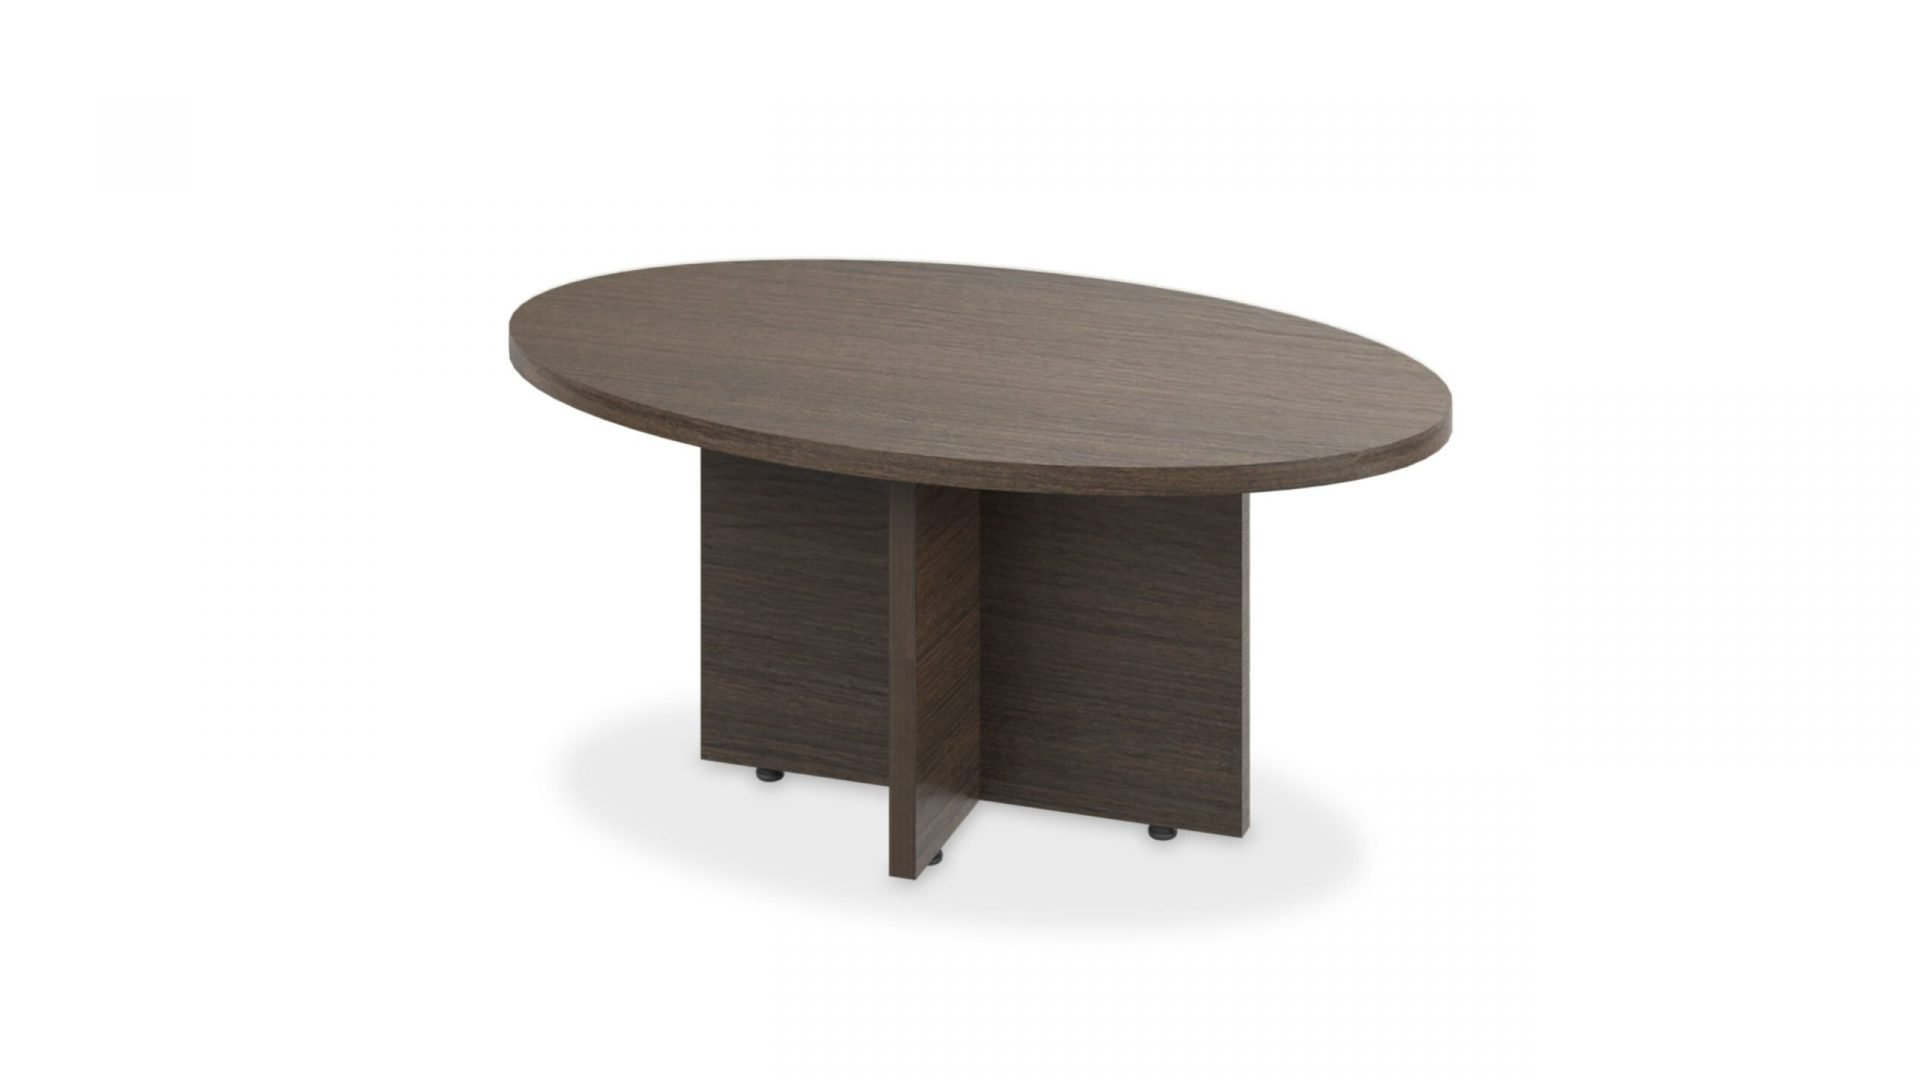 Solo Oval Coffee Table 1619 on white bakcground